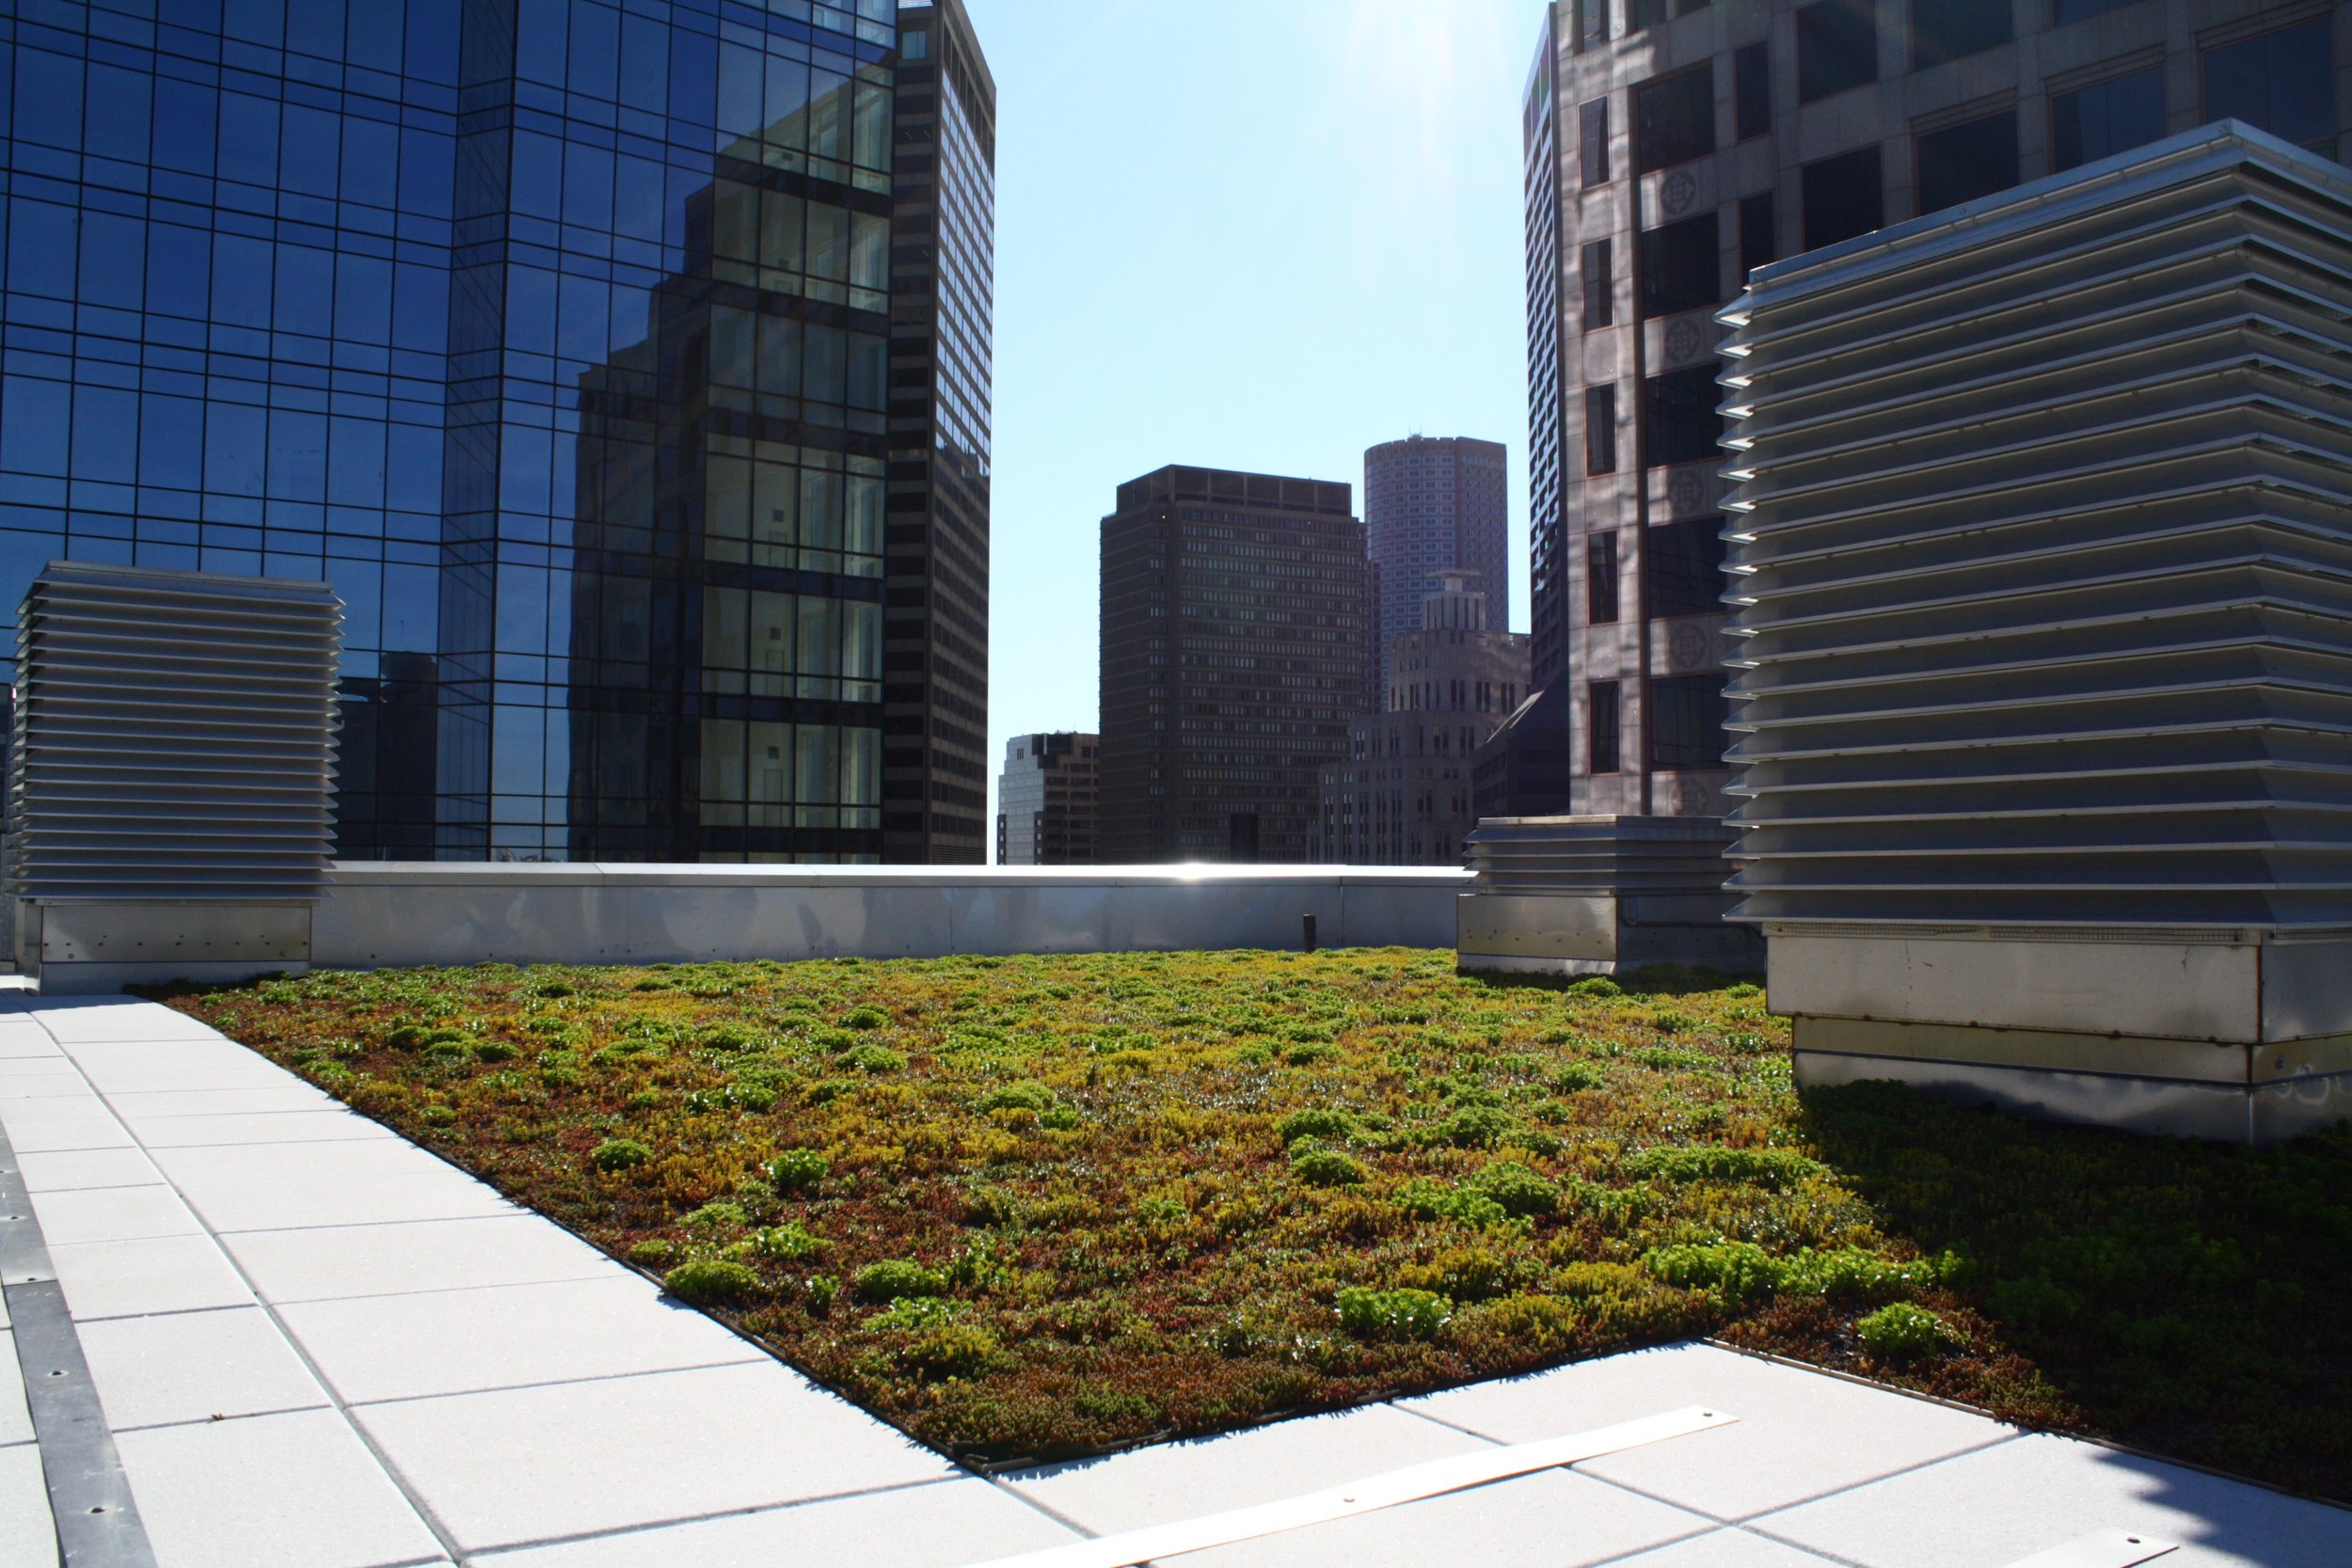 recover-green-roofs-rooftop-garden-downtown-crossing-2016-13.jpg